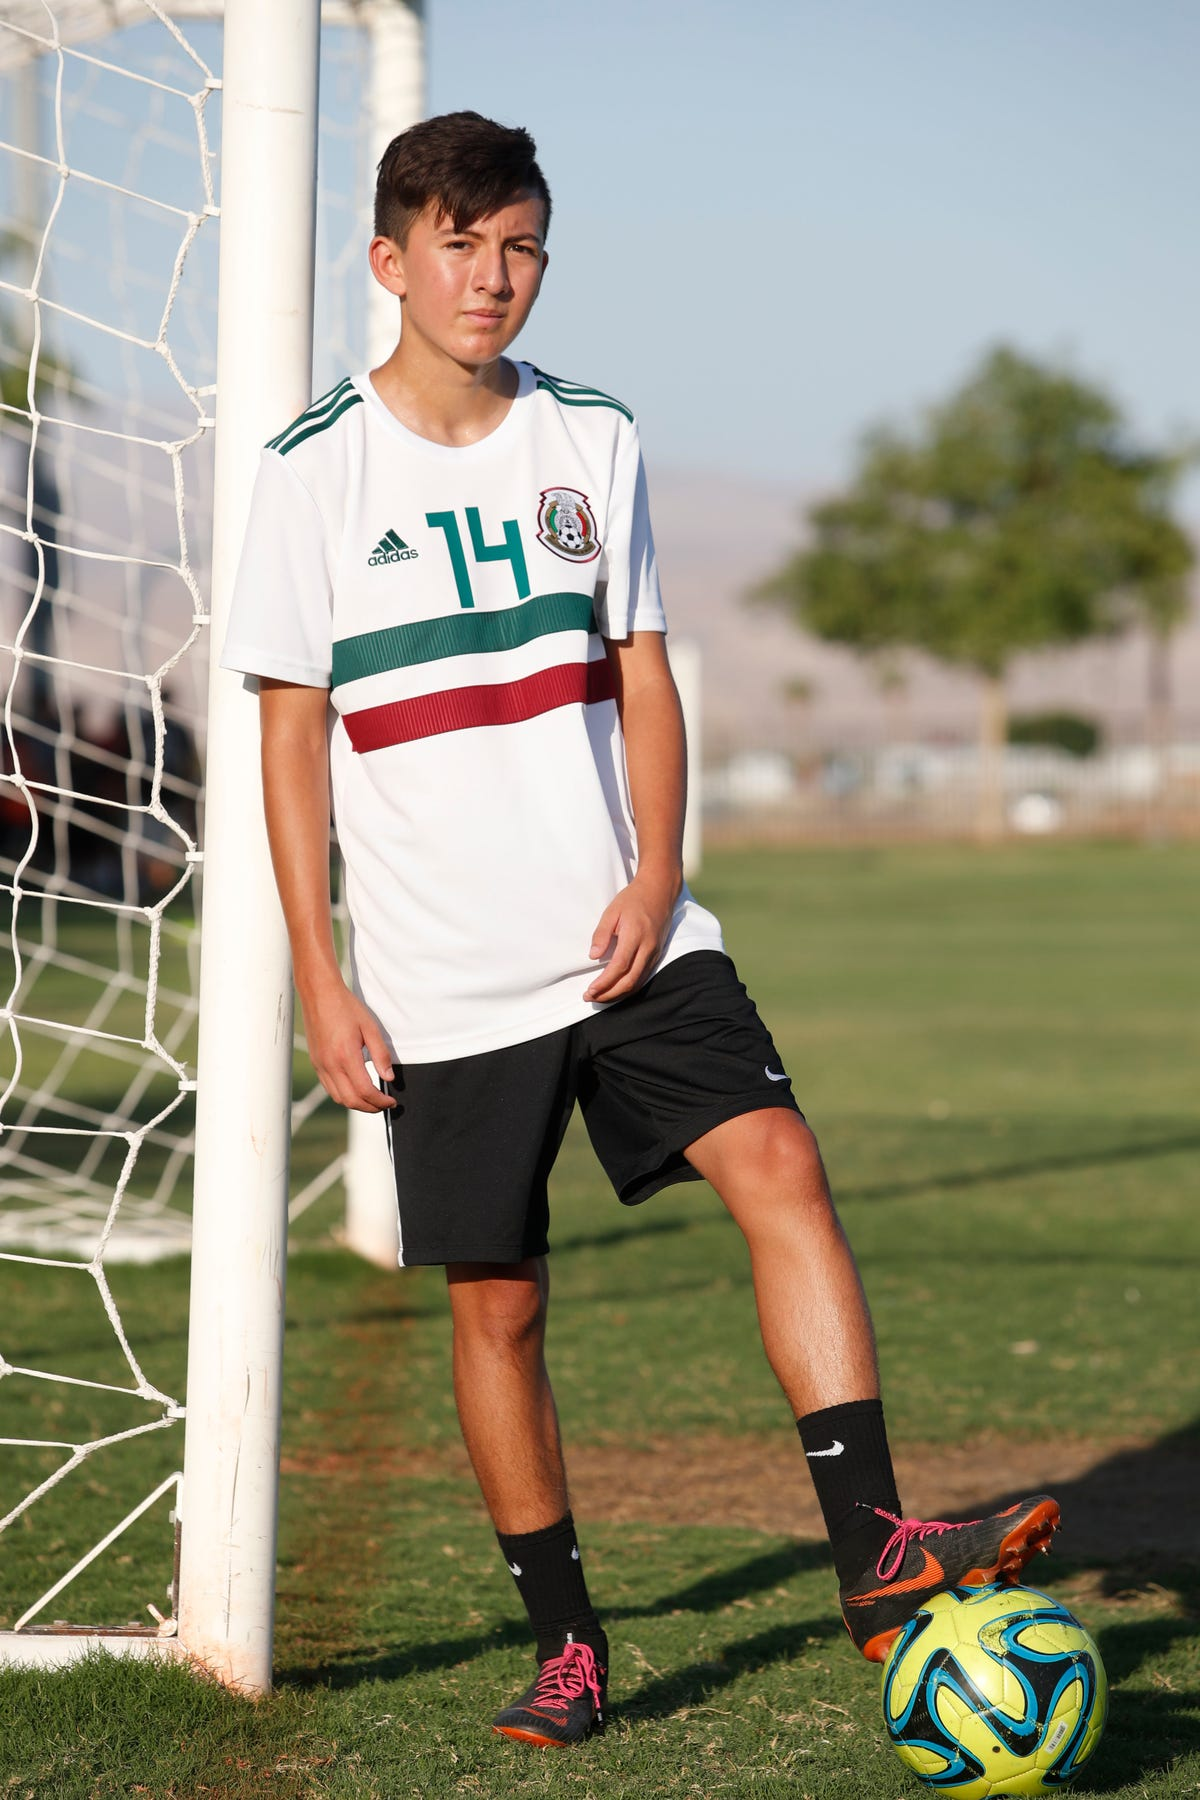 Desert teen earns spot at prestigious Barca Academy for soccer